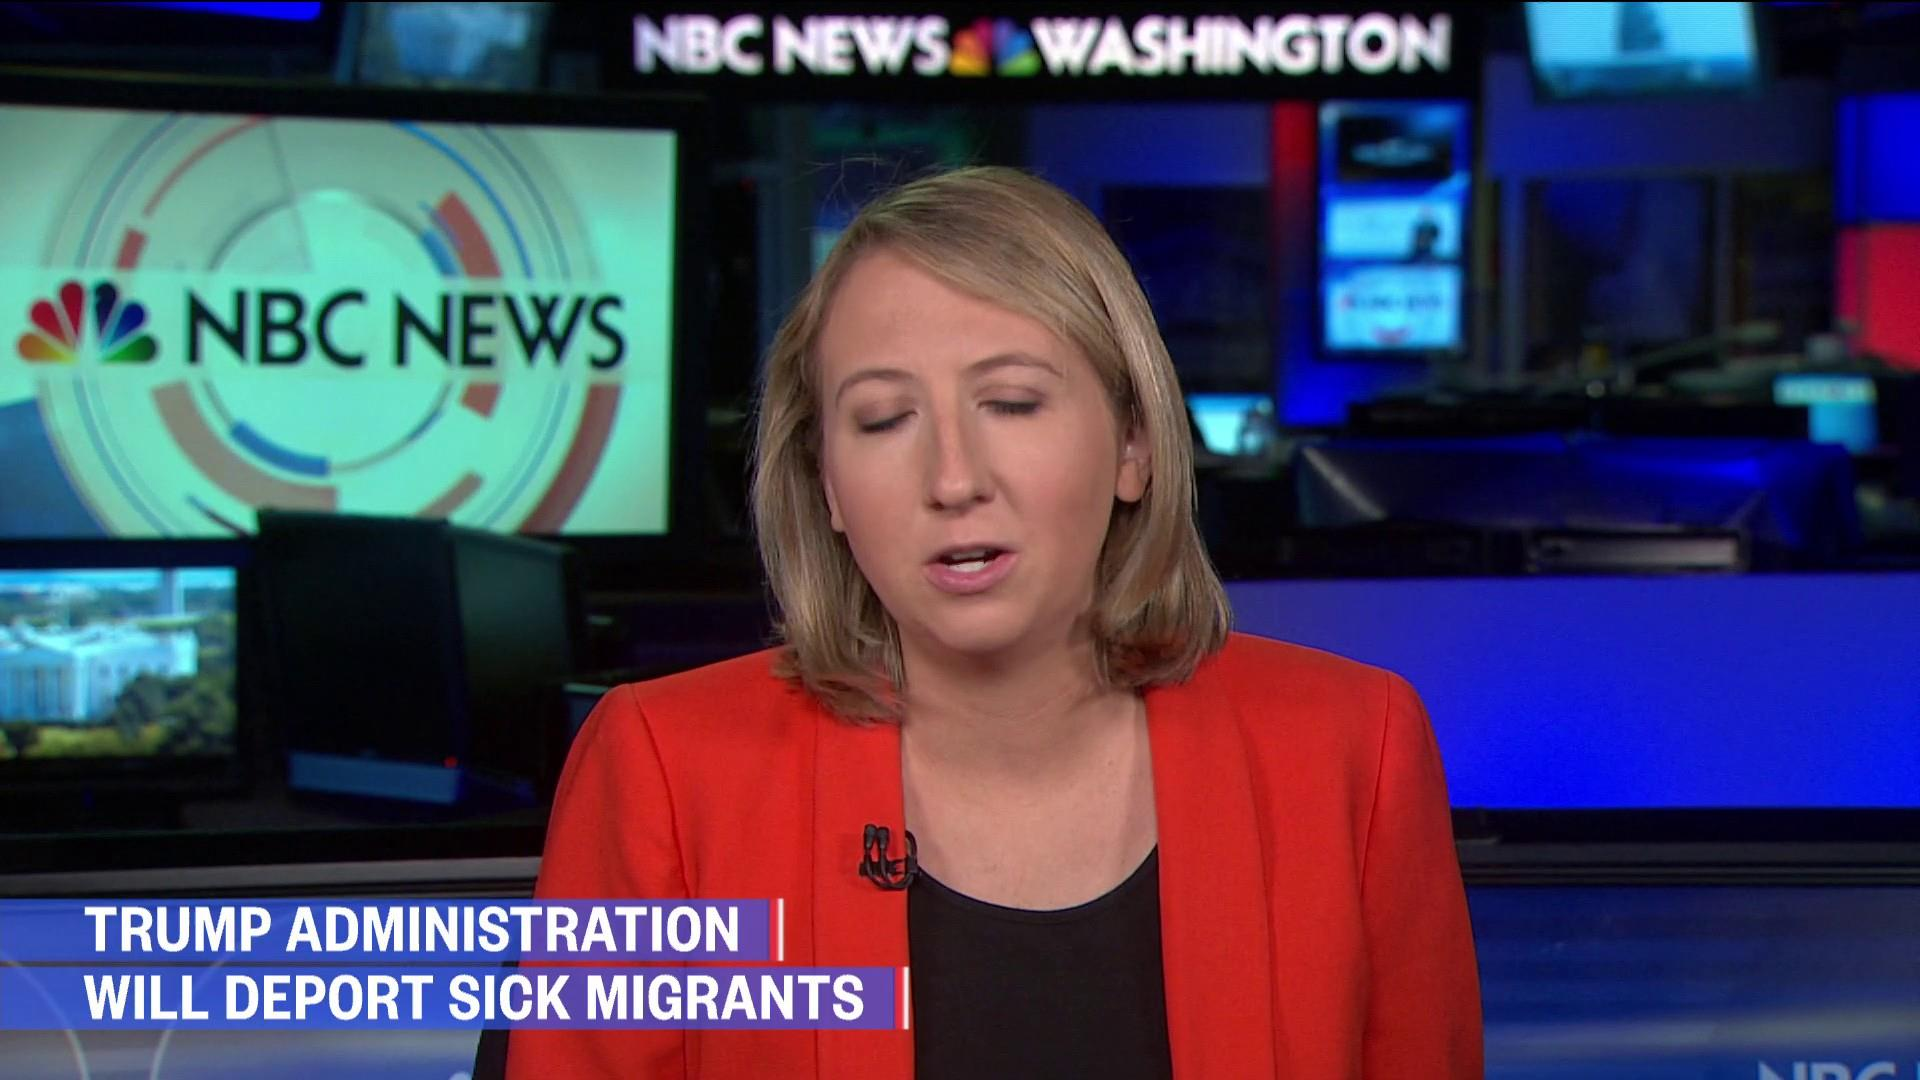 https://www nbcnews com/video/special-report-at-least-5-dead